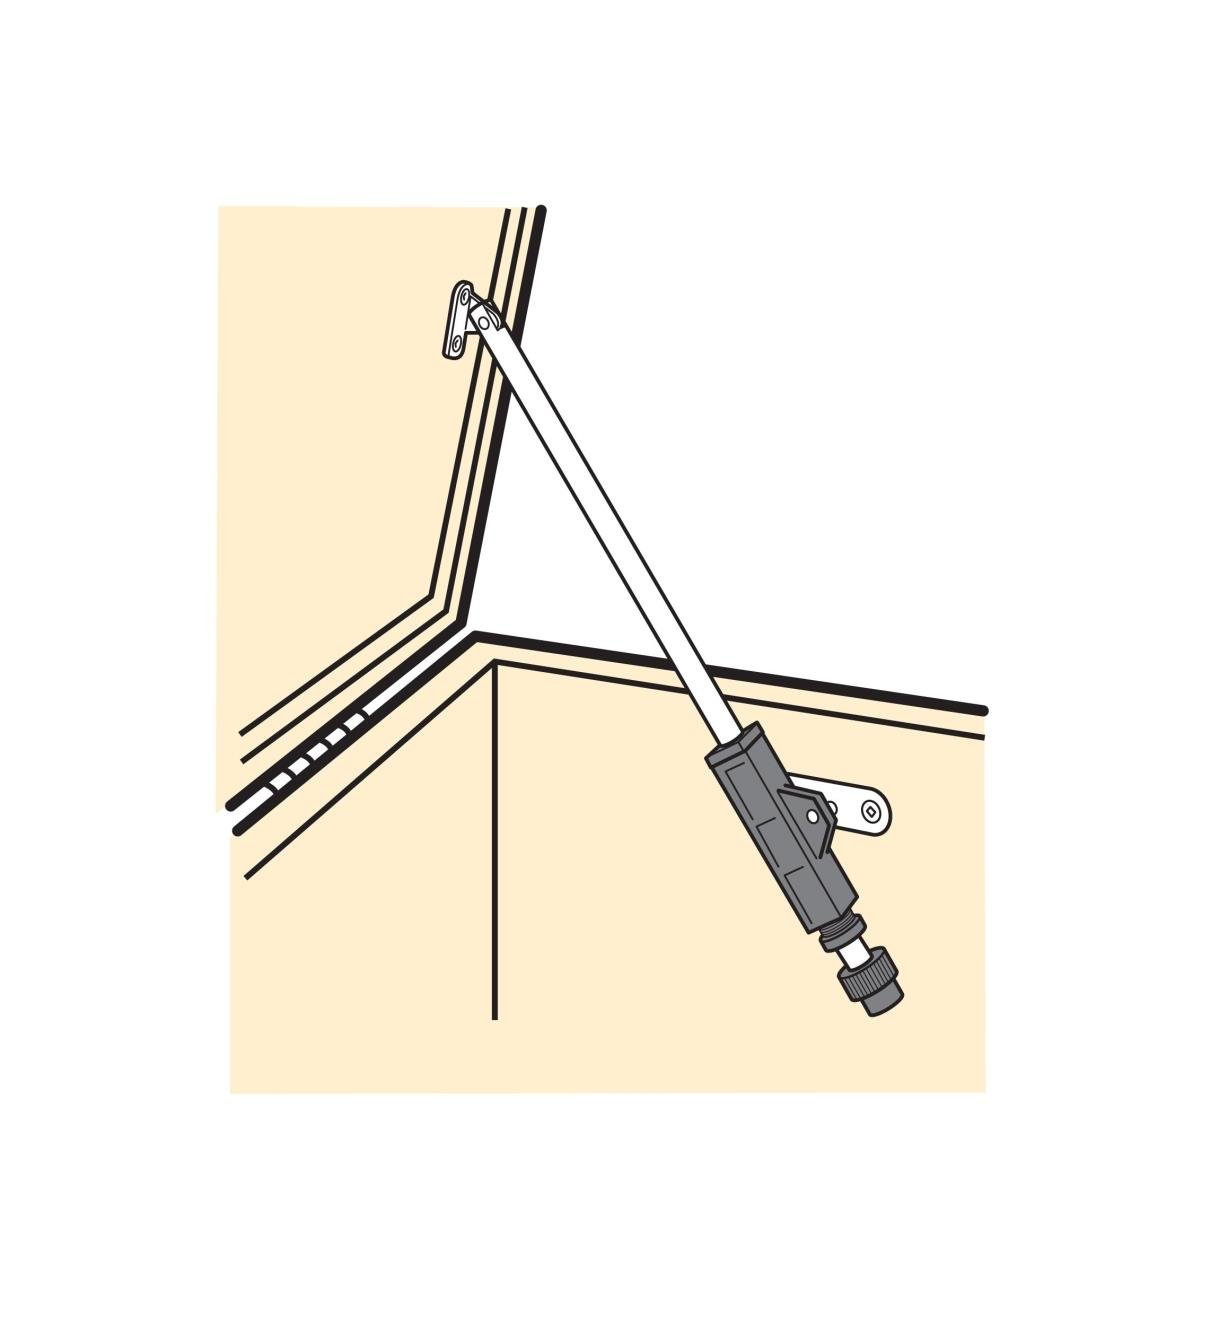 Illustration of Flap Stay installed on a chest, holding the lid open